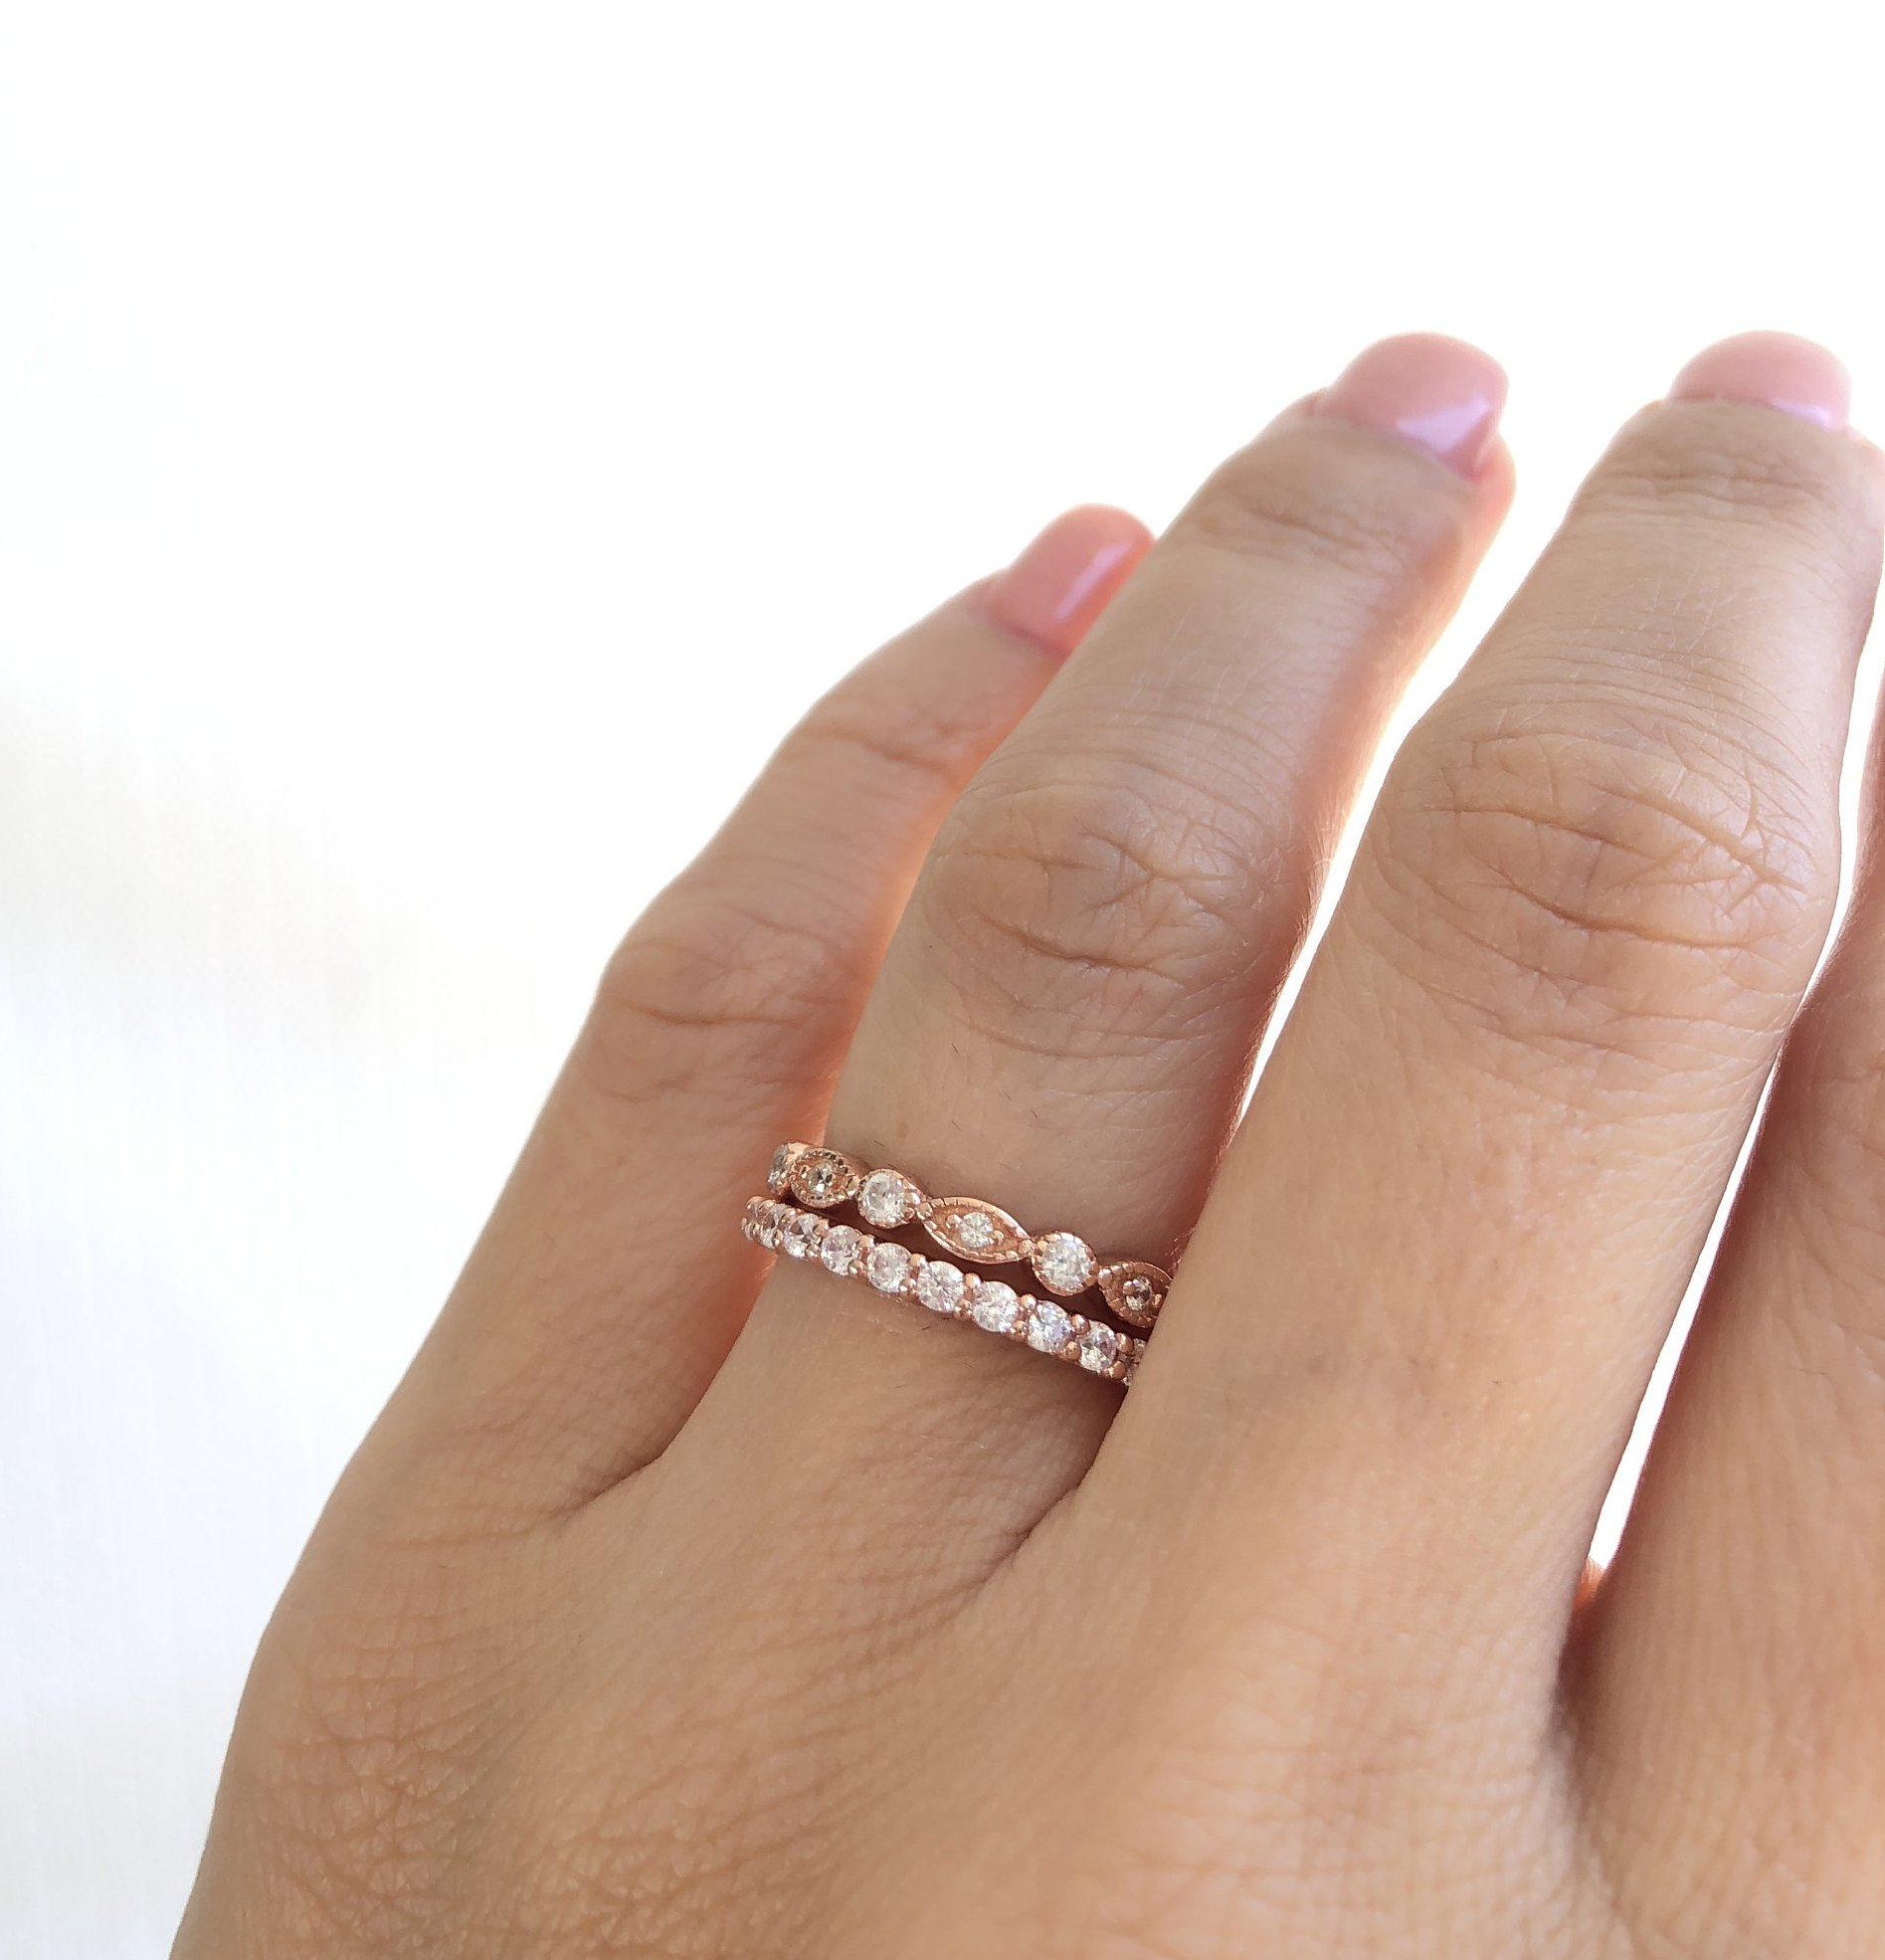 Rose Gold Wedding Bands. Eternity Band Ring. Fine Cz Stacking Rings. Rose Gold Ring Set. Sterling Silver Rose Gold Plated Wedding Bands (View 12 of 25)